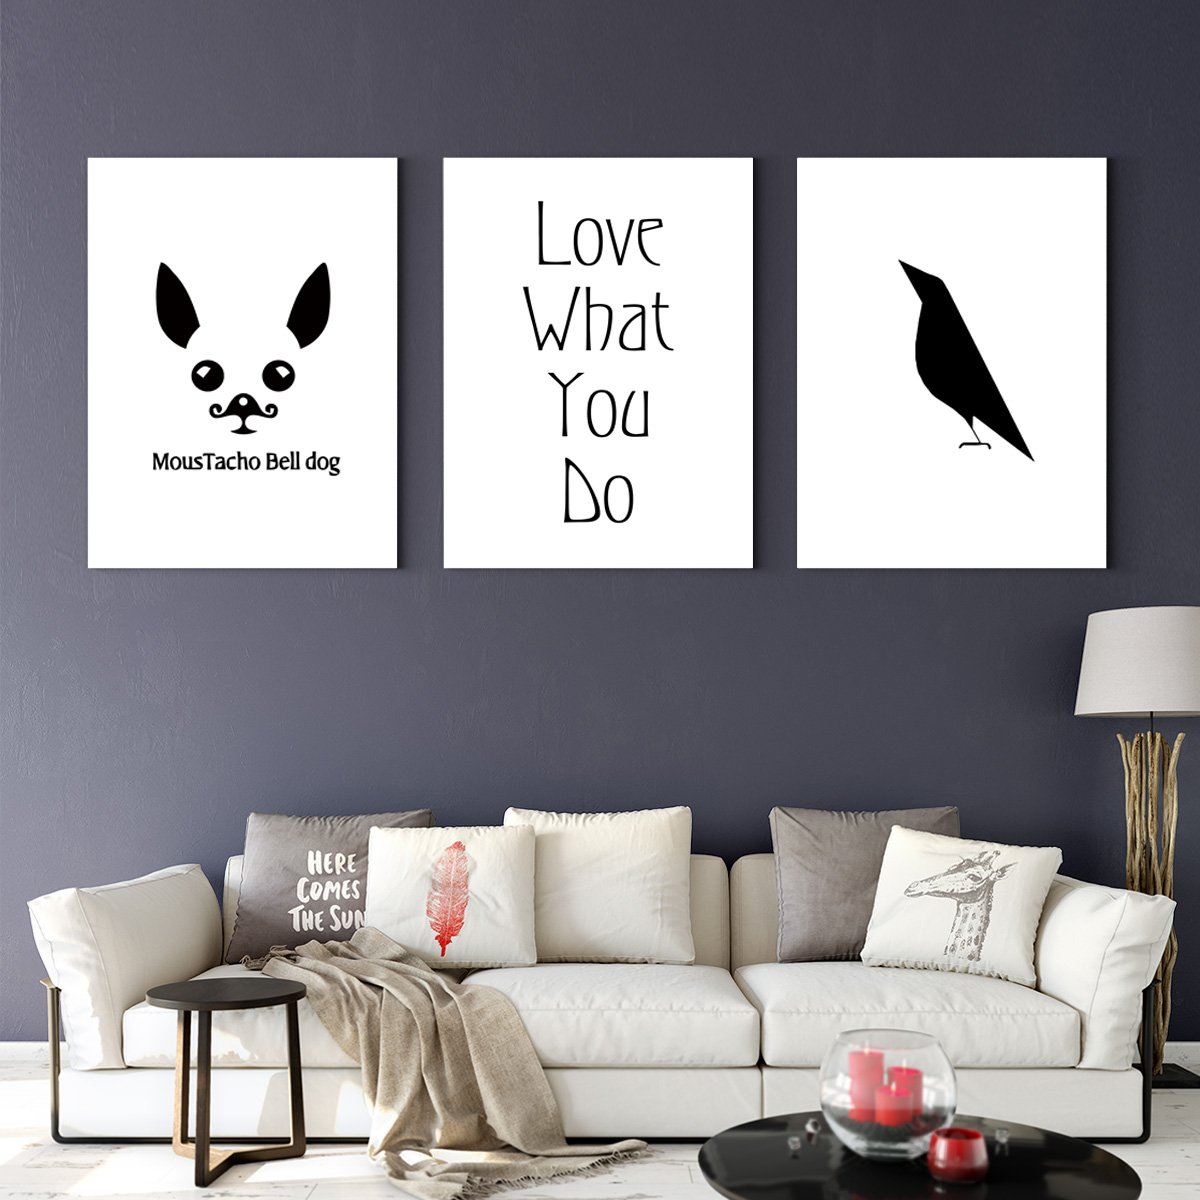 Contemporary black and white animals - abstract adornment draws for bedroom